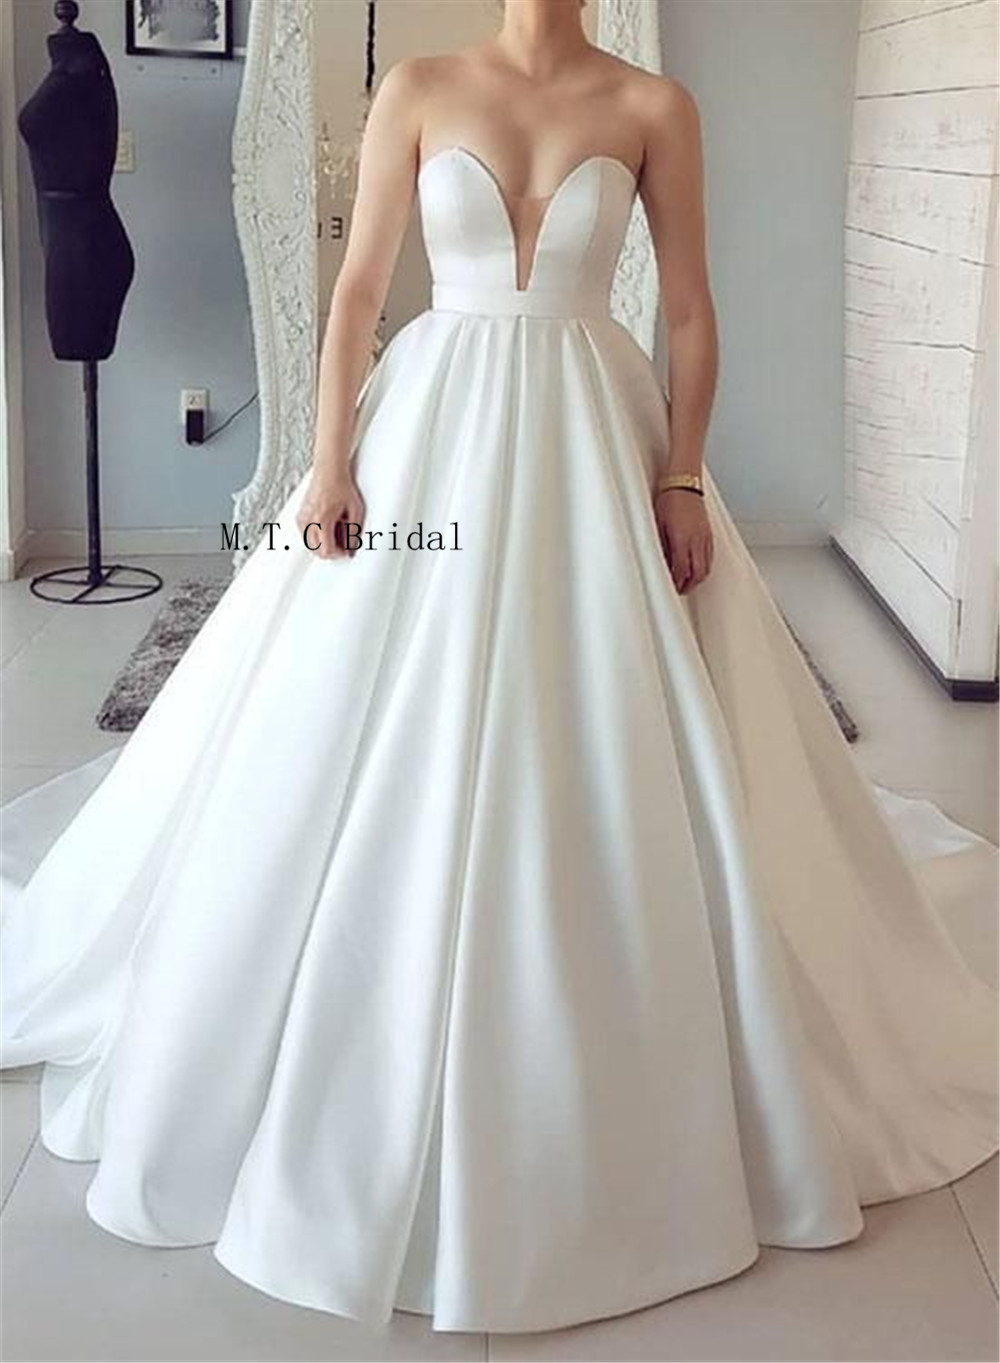 Custom Made White Satin Princess Wedding Dresses Strapless Sweep Train Charming Bridal Dress Cheap 2019 Vestido De Casamento